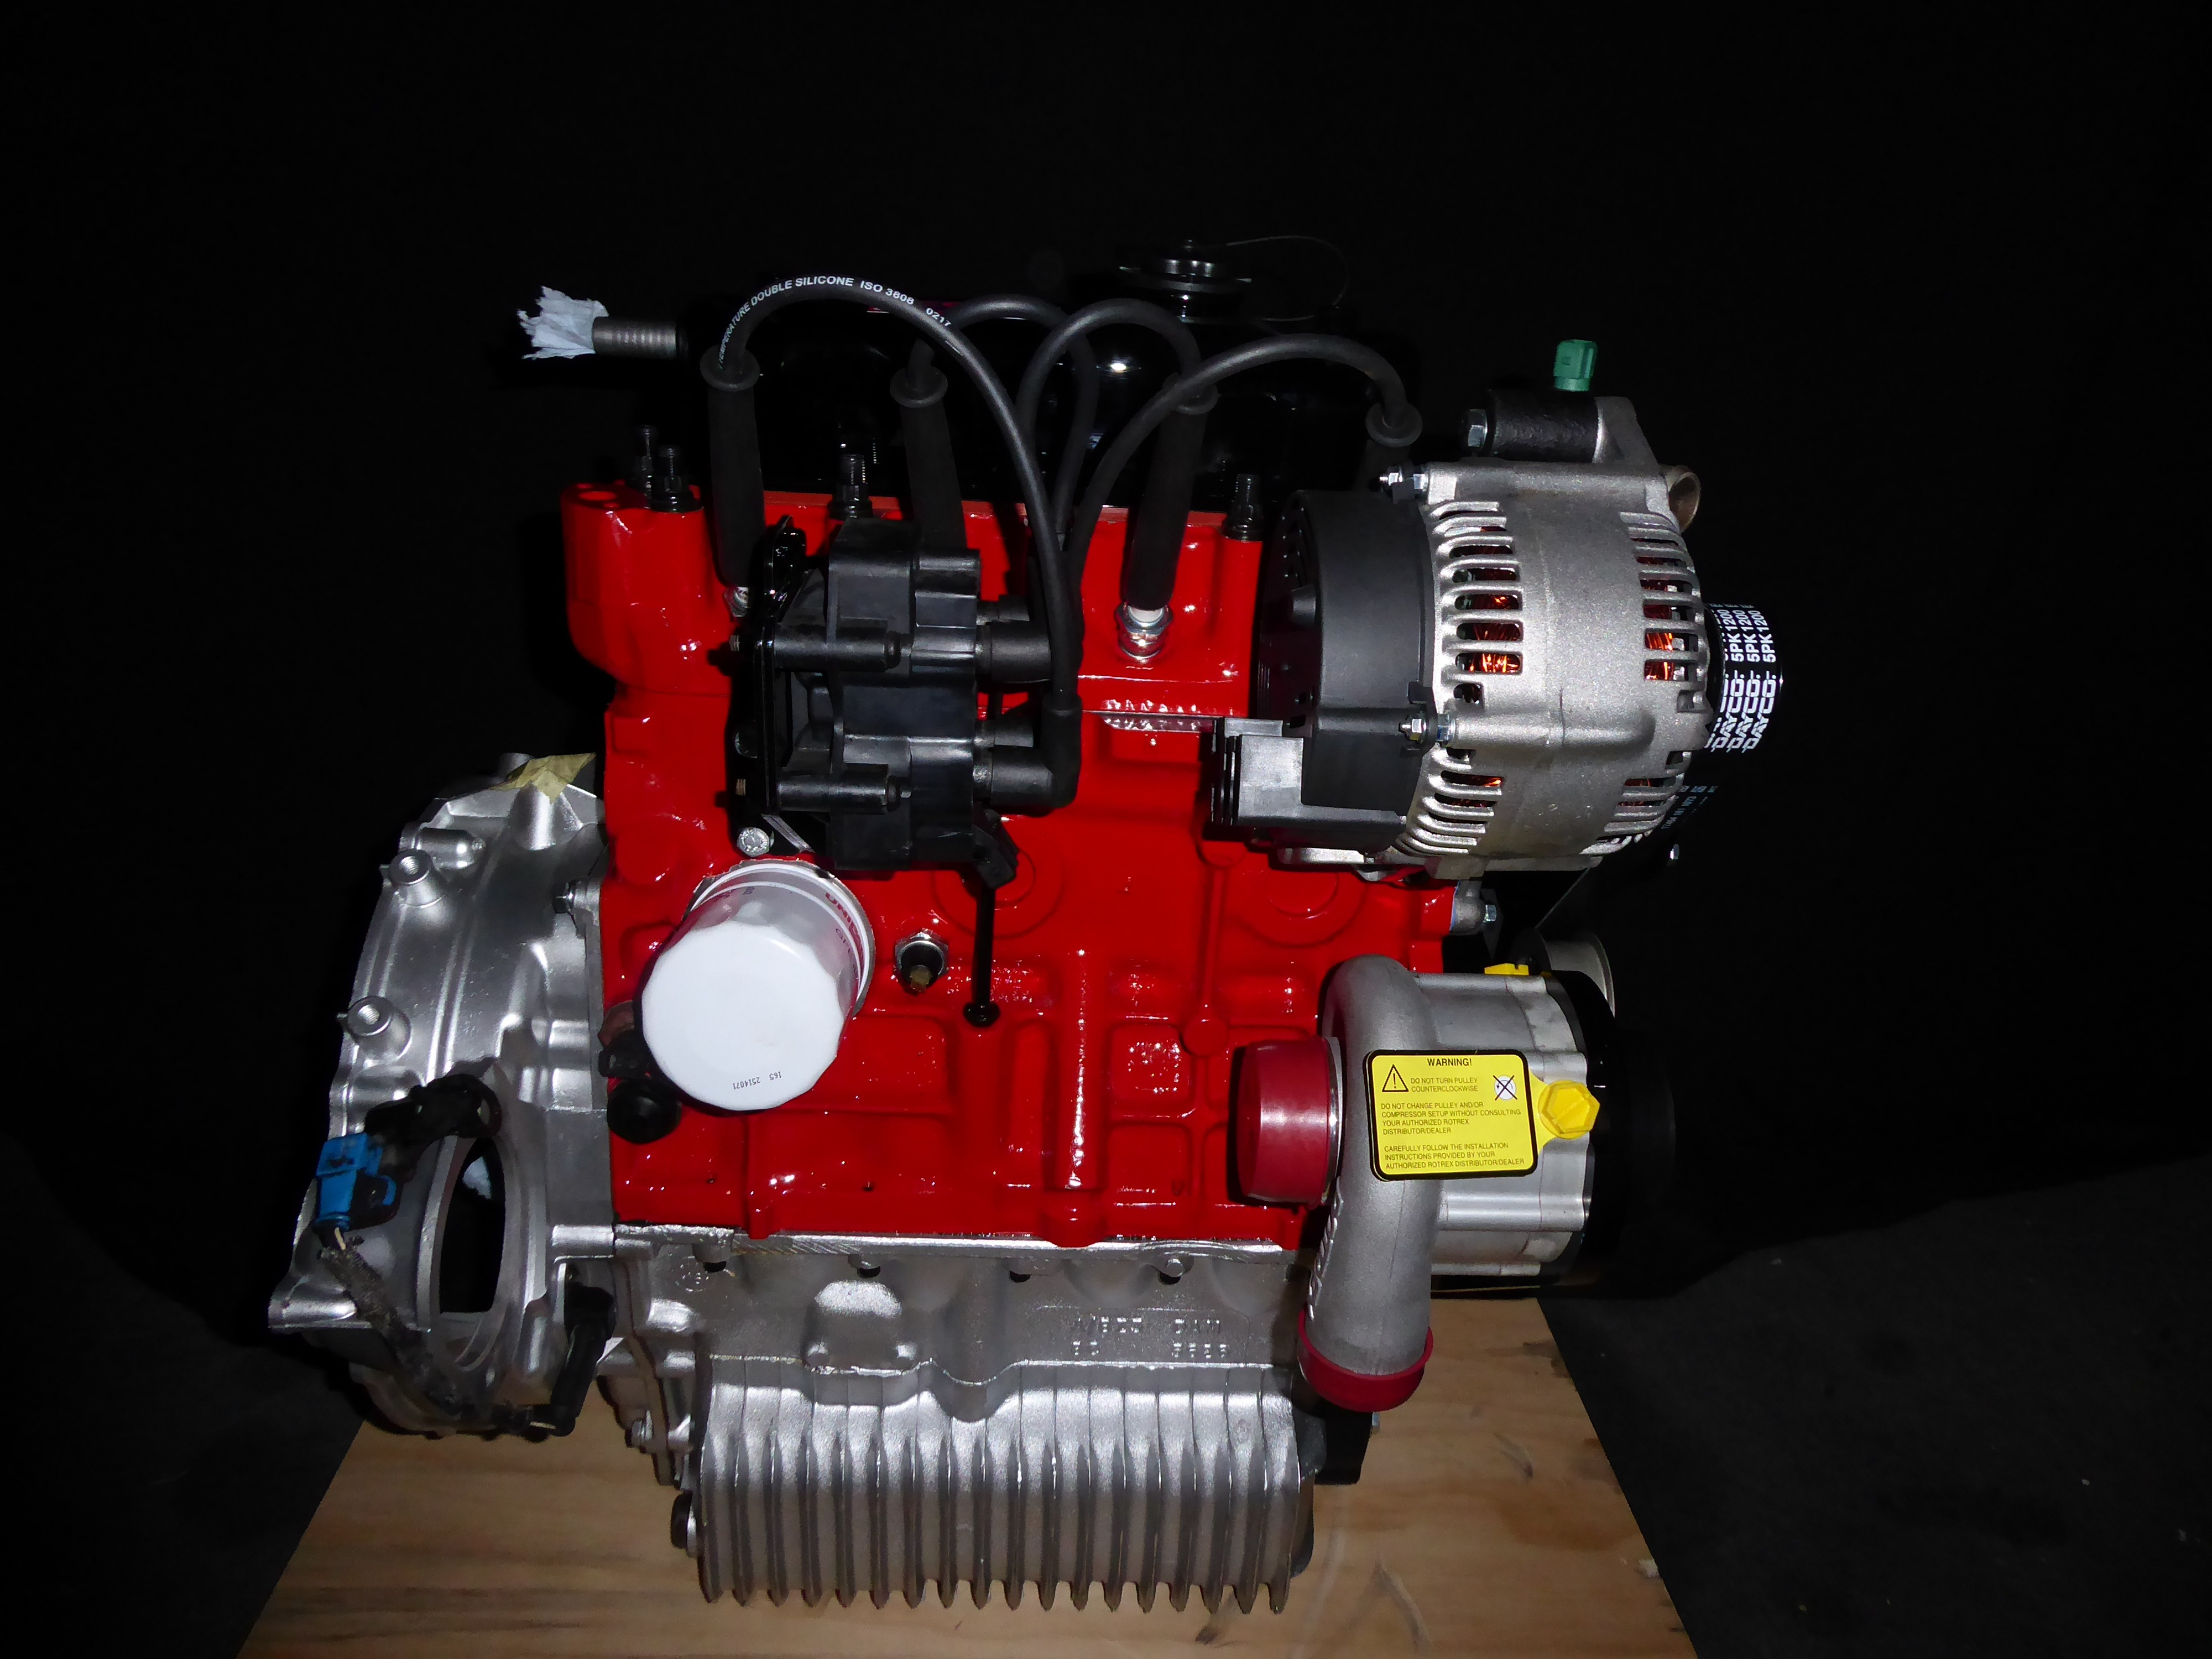 S-Pack Rotrex Supercharged 5 Port Engine